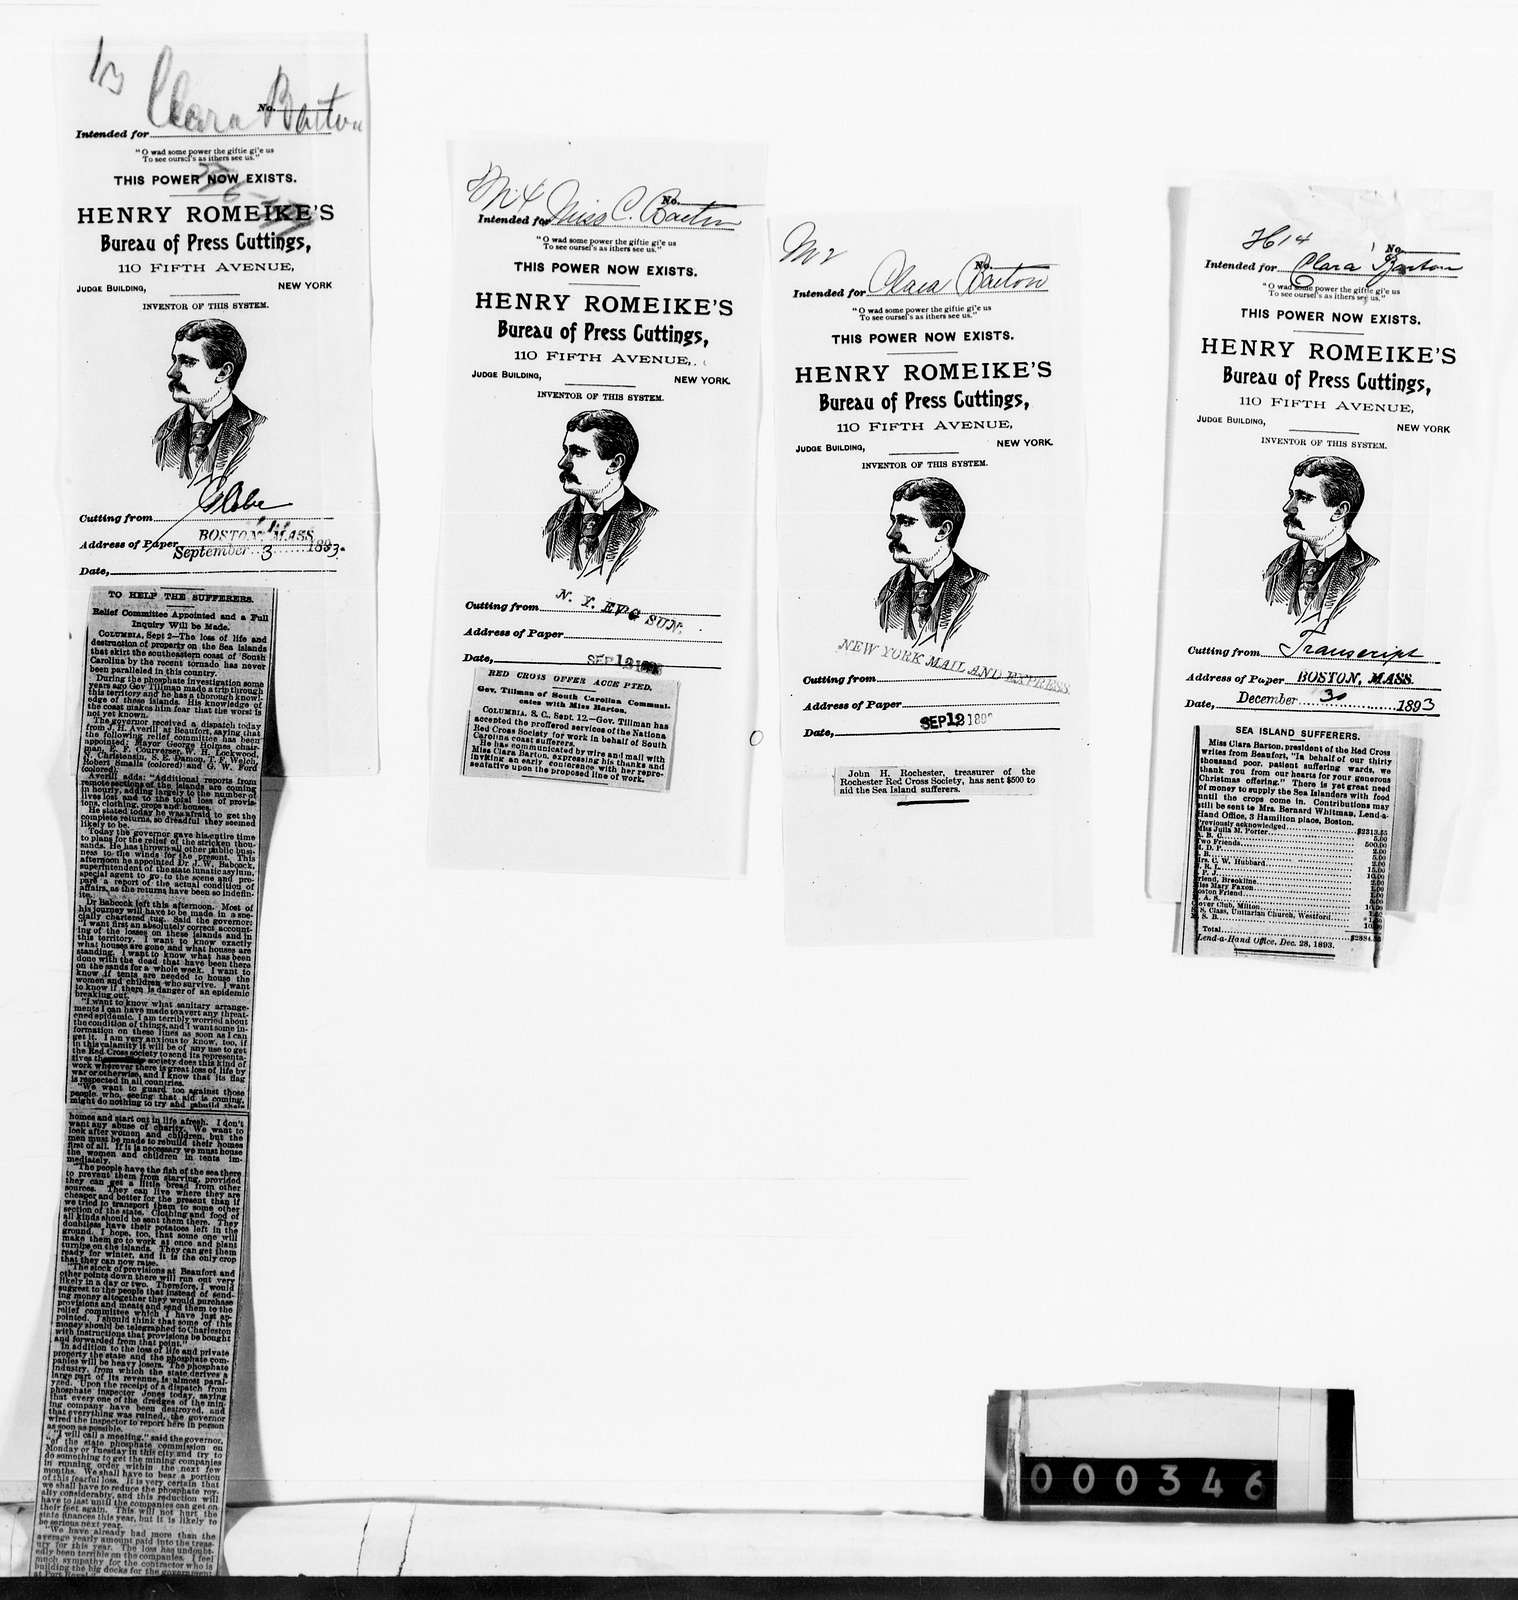 Clara Barton Papers: Red Cross File, 1863-1957; American National Red Cross, 1878-1957; Relief operations; Sea Islands, S.C.; Newspaper clippings, 1893-1894, undated